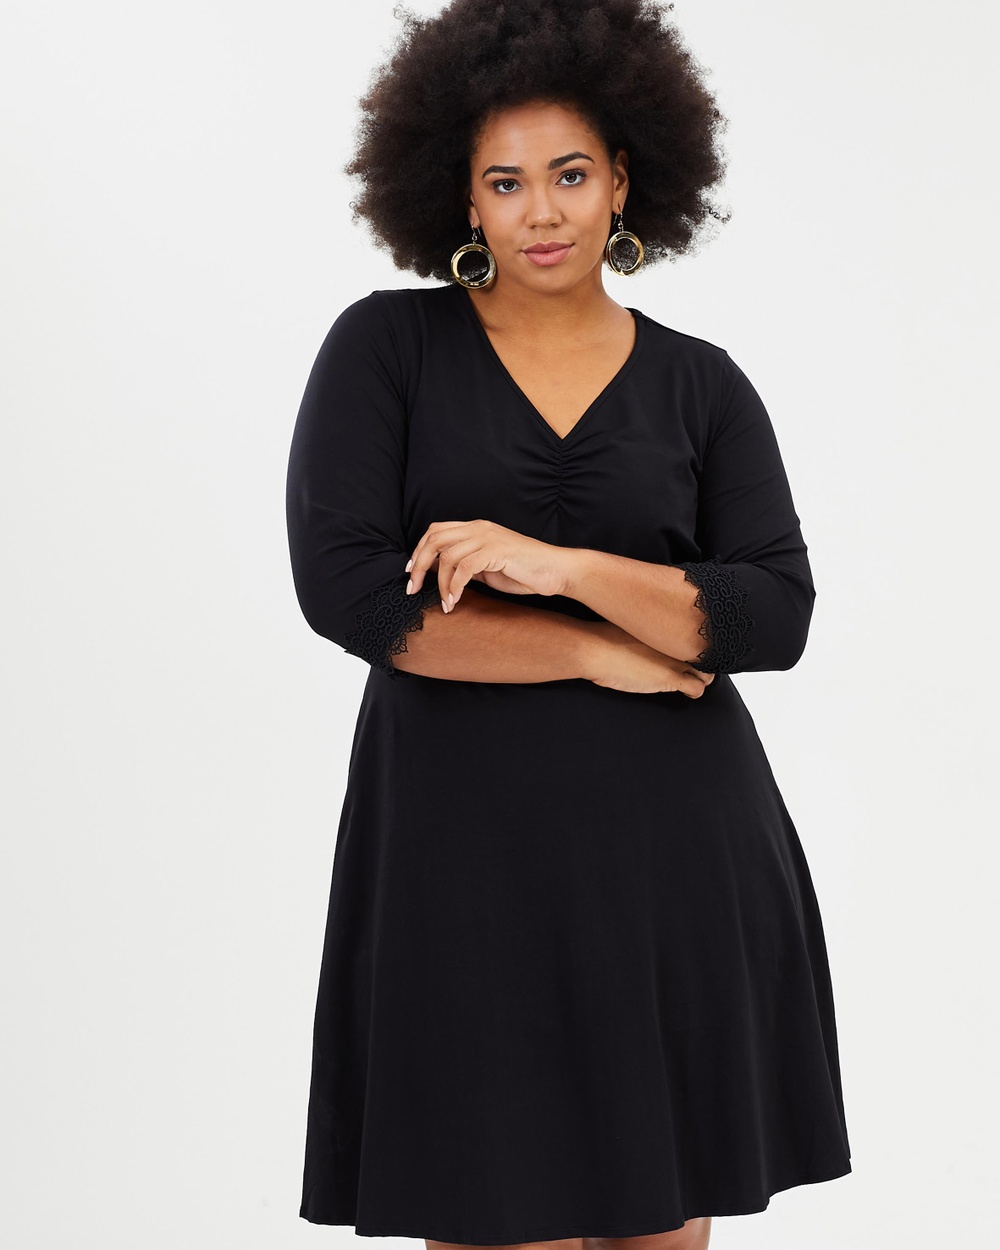 DP Curve 3 4 Sleeve Lace Trim Fit And Flare Dress Dresses Black 3-4 Sleeve Lace Trim Fit-And-Flare Dress